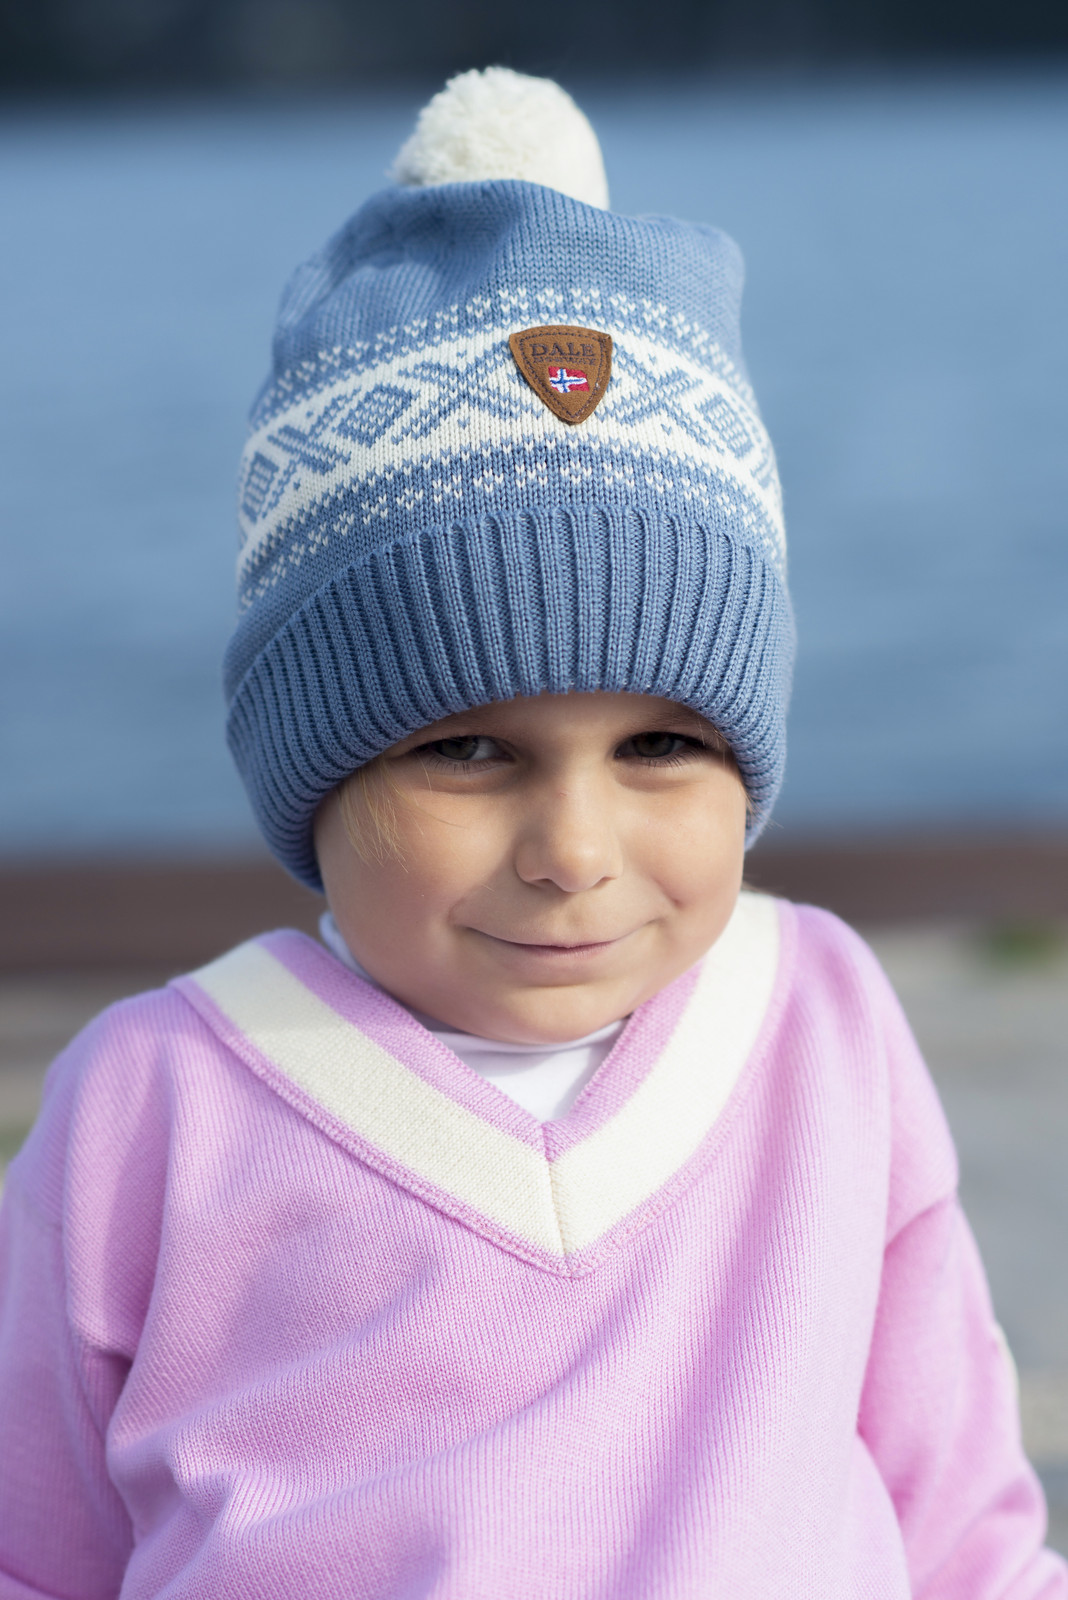 Girl wearing Dale of Norway Morgedal Sweater, Childrens - Pink Candy/Off White, 94031-I and Cortina hat